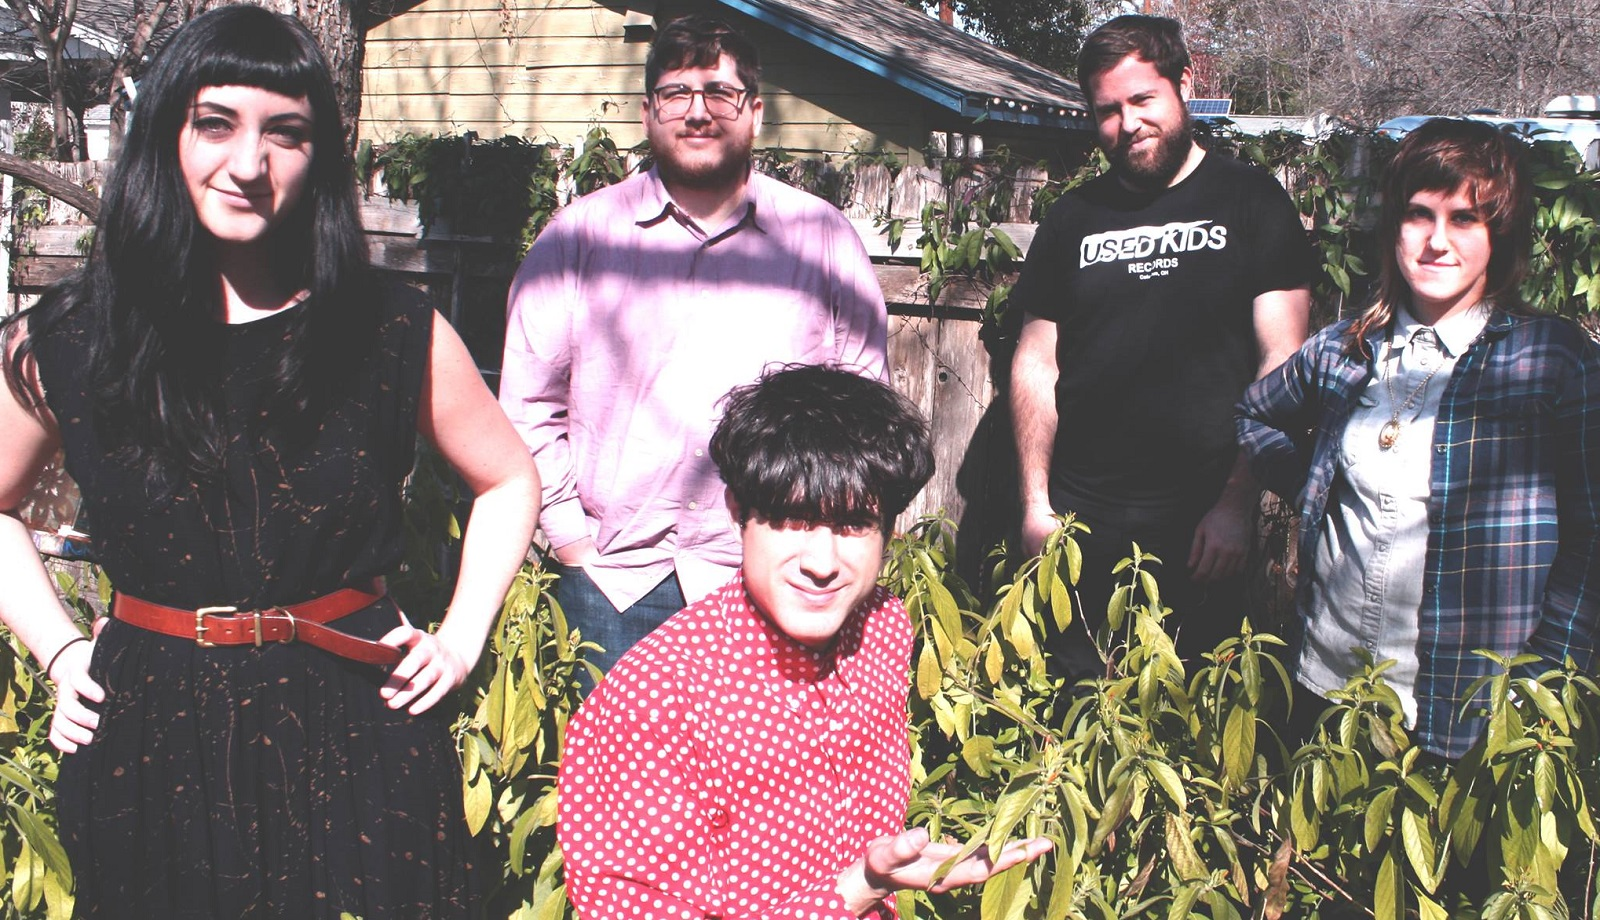 Baltimore band plays Tuesday in Mohawk Place.